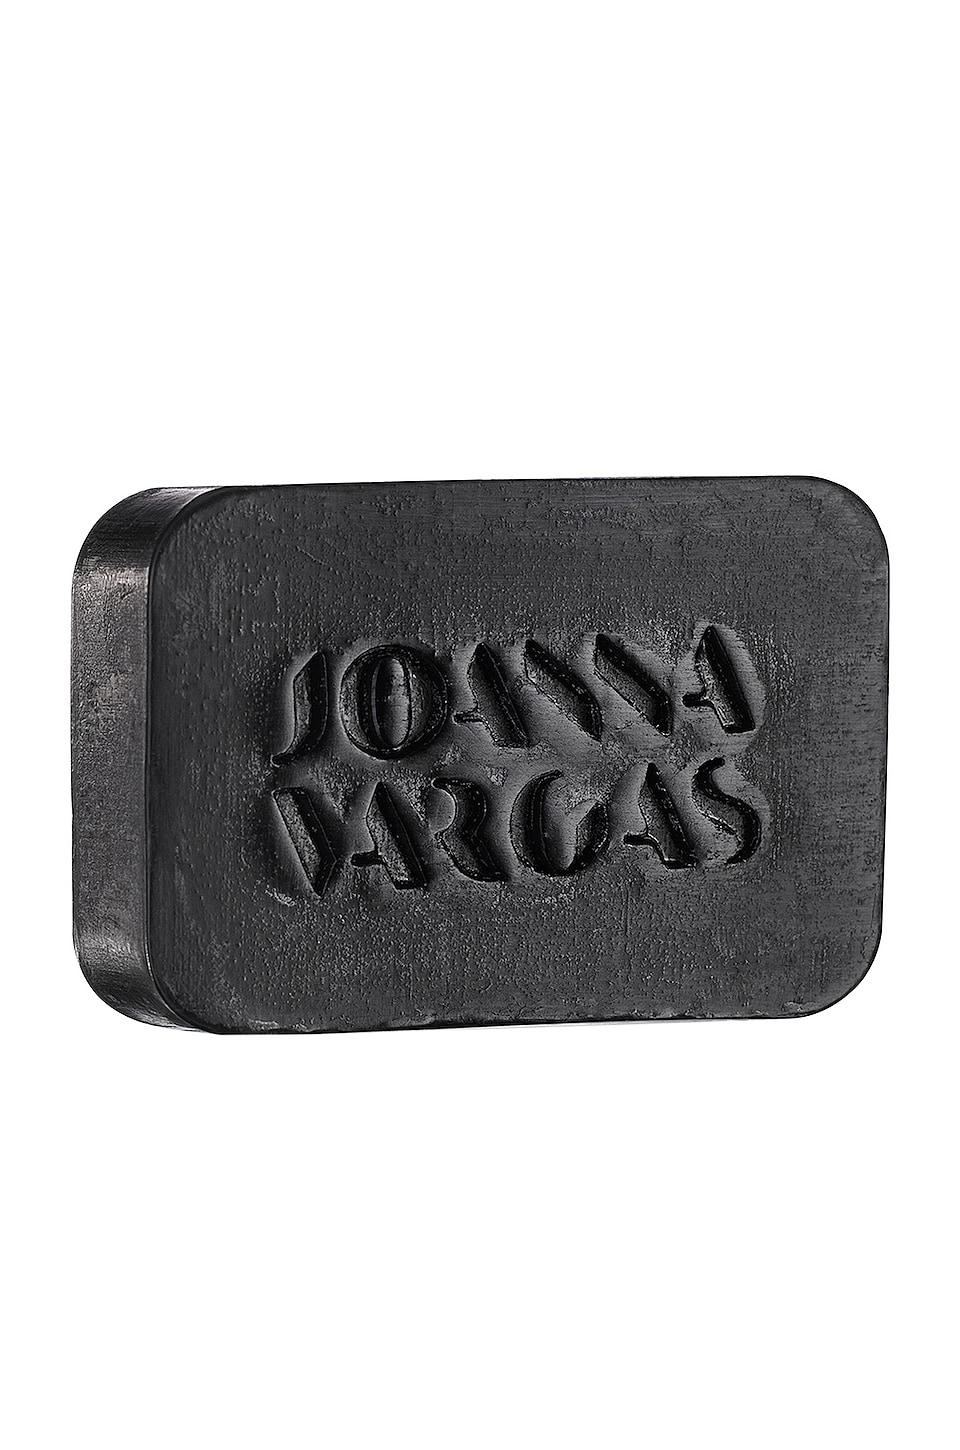 Joanna Vargas Miracle Body Bar